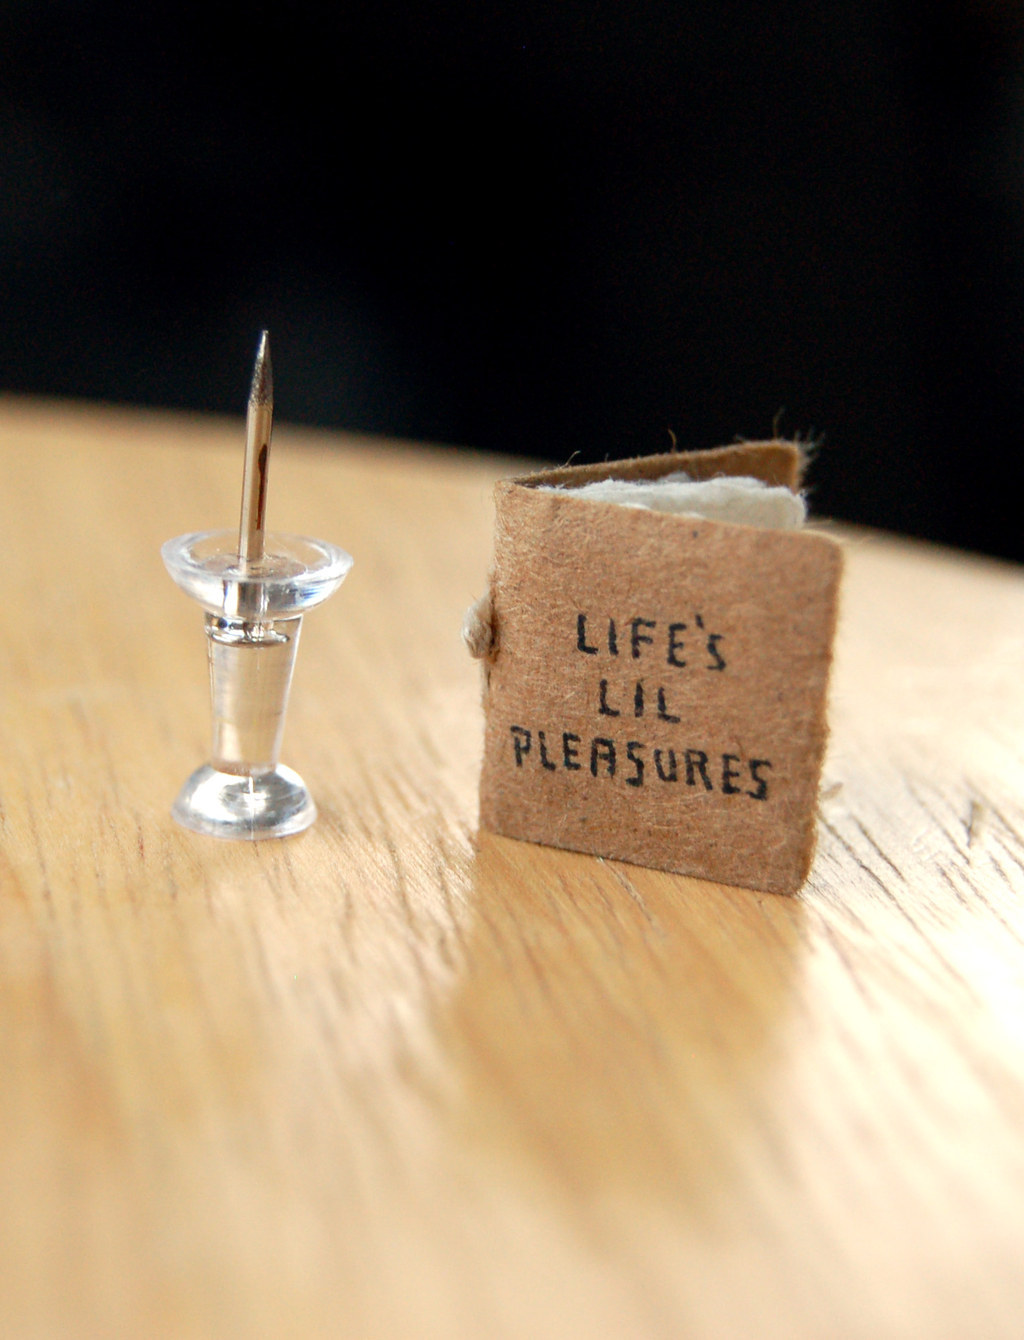 These Impossibly Tiny Books Will Make You Feel Things